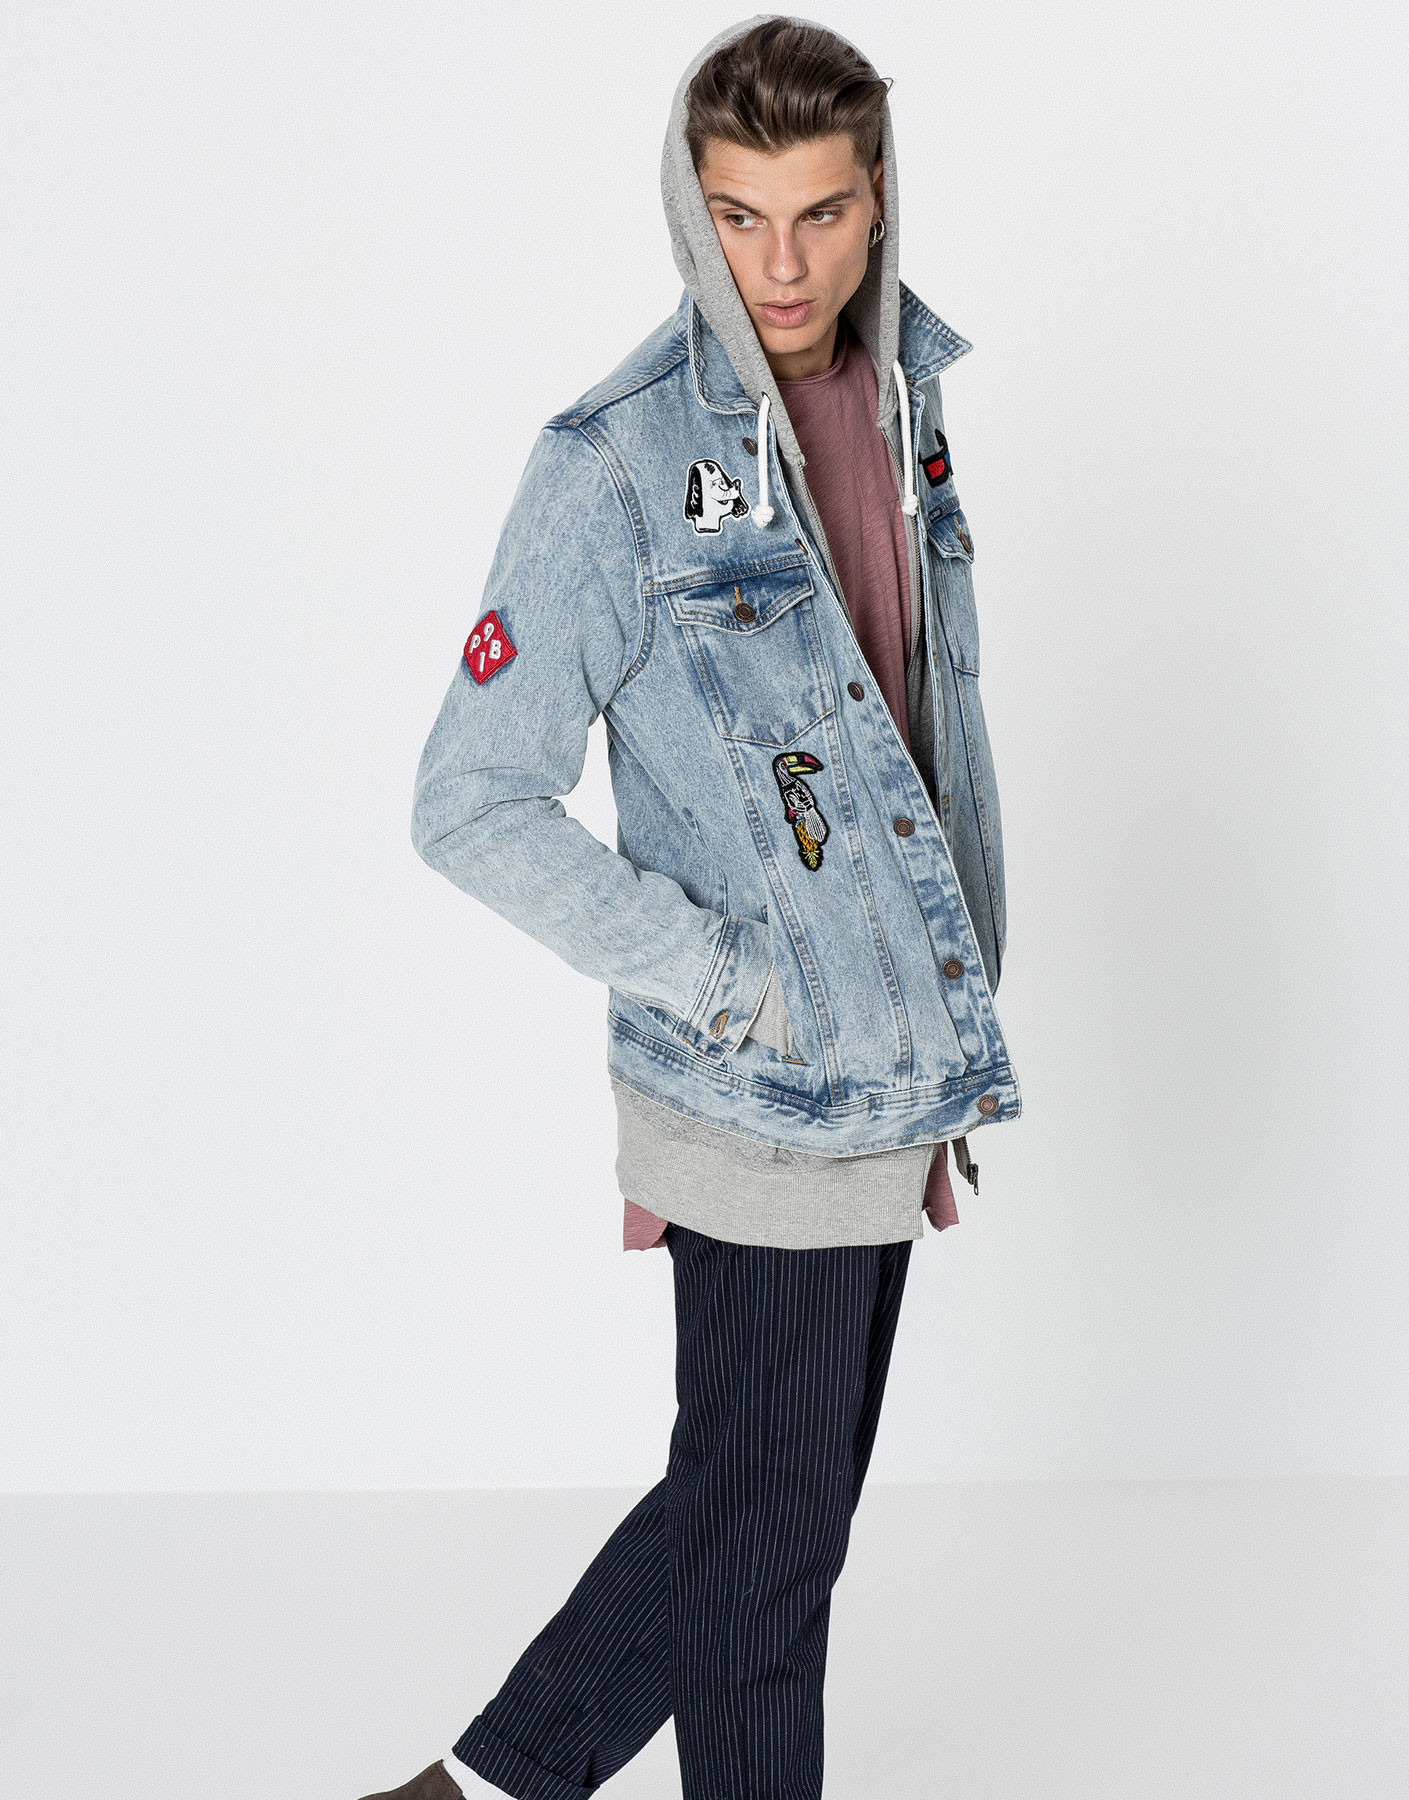 Image result for mens patch denim jacket pull and bear